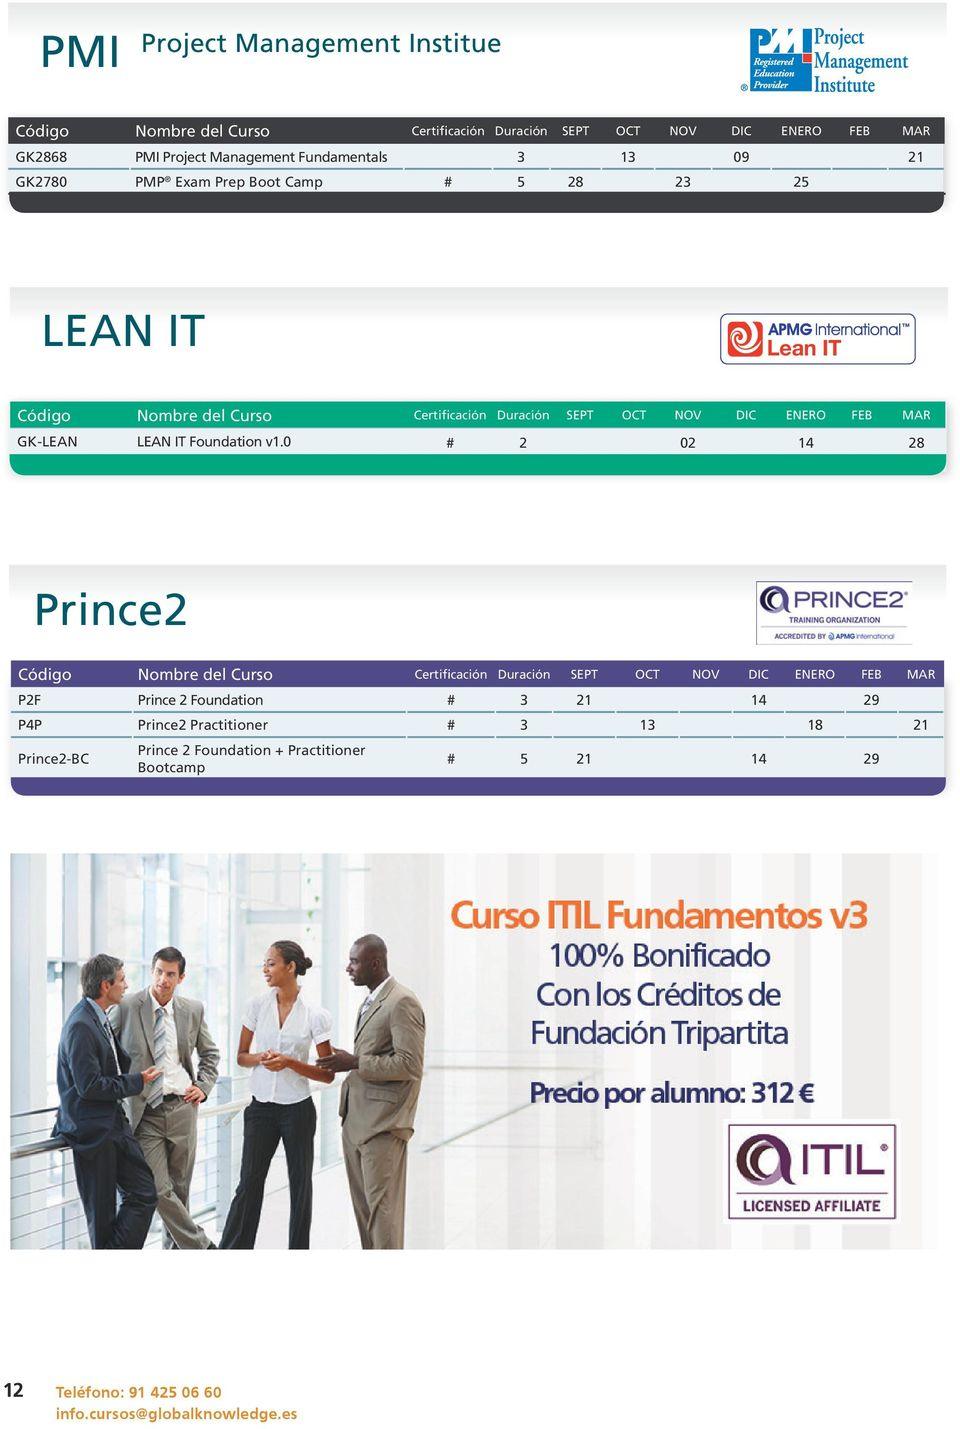 0 # 2 02 14 28 Prince2 P2F Prince 2 Foundation # 3 21 14 29 P4P Prince2 Practitioner # 3 13